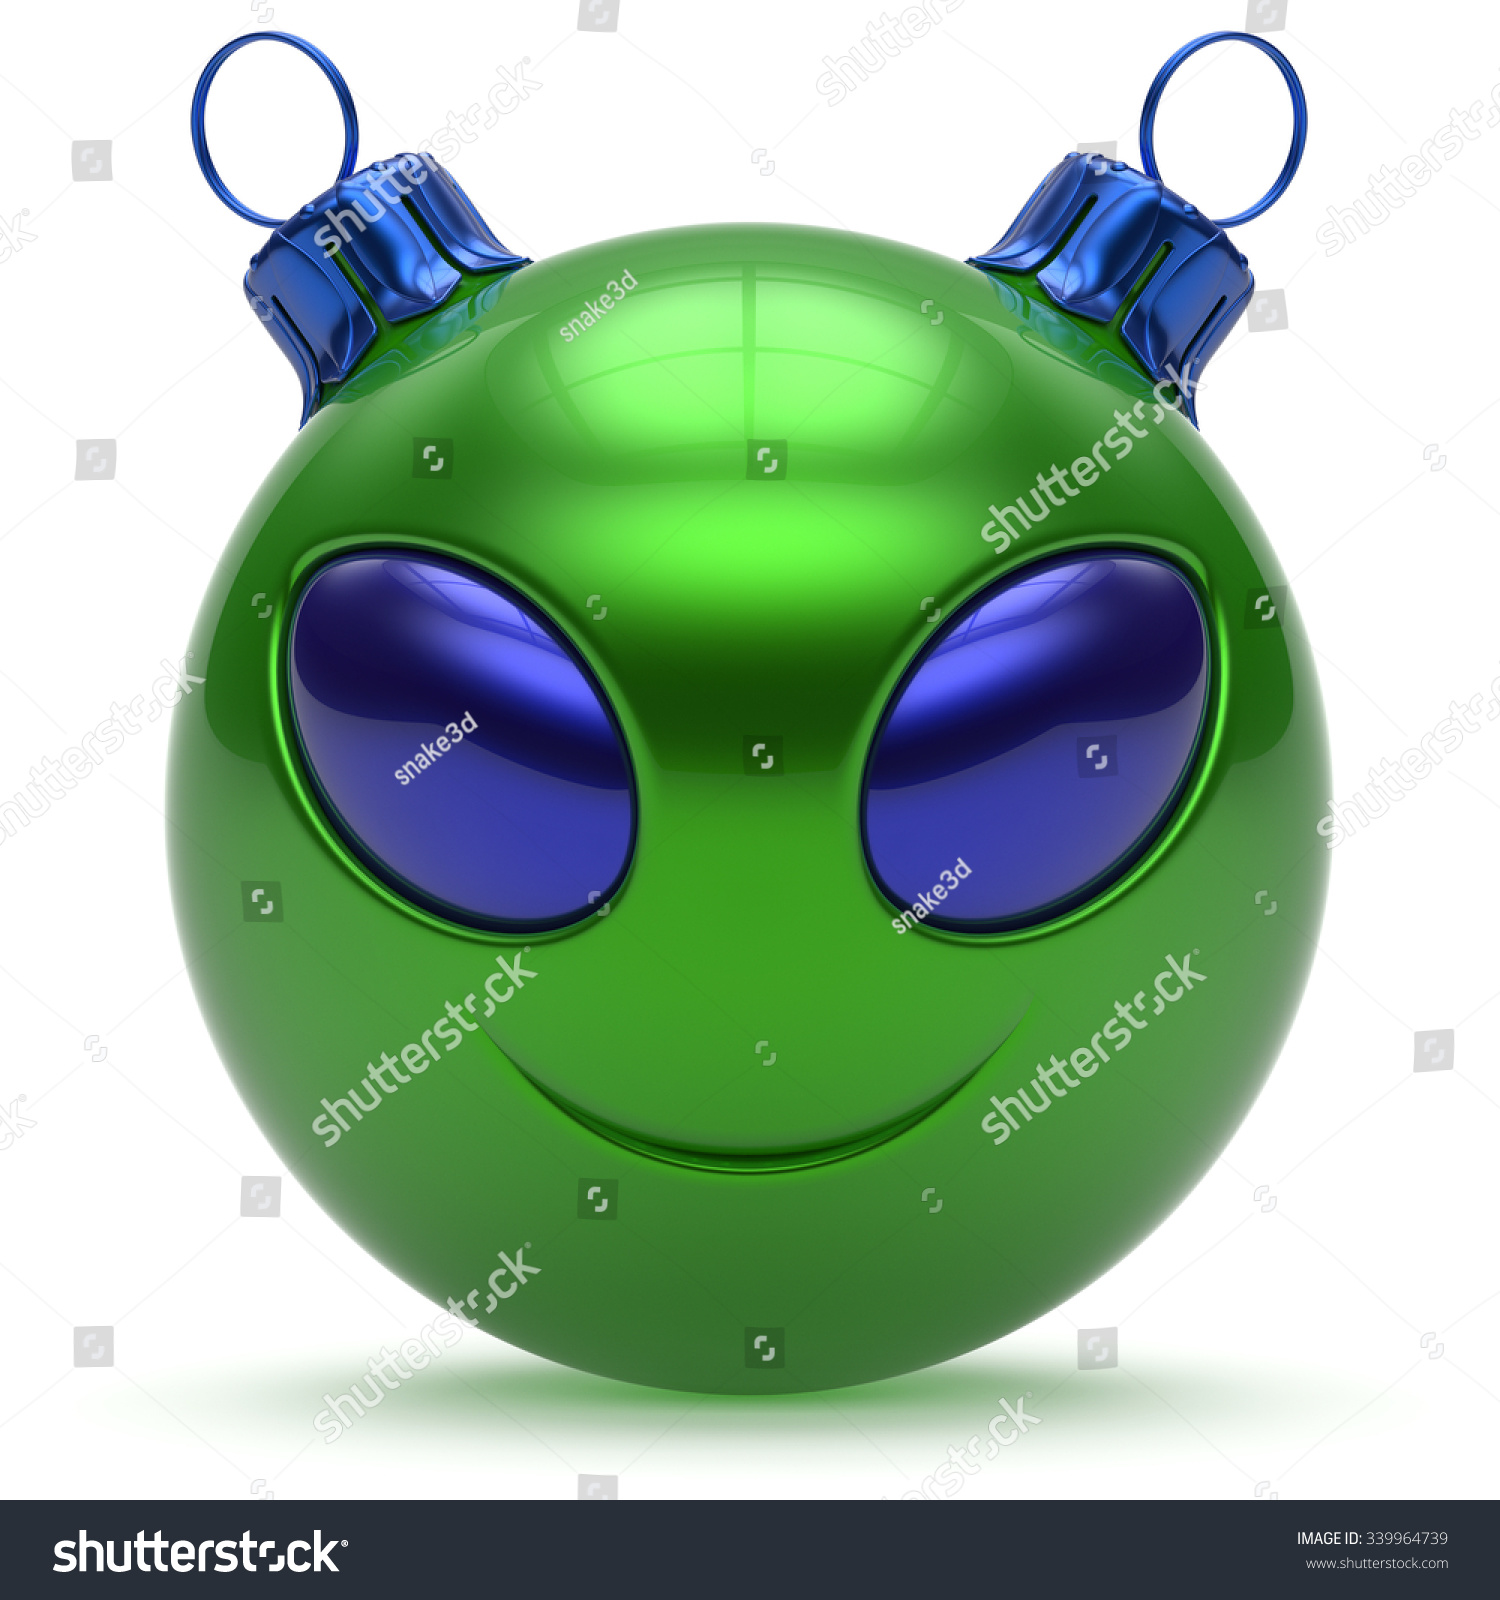 Christmas ball smiley alien face happy stock illustration